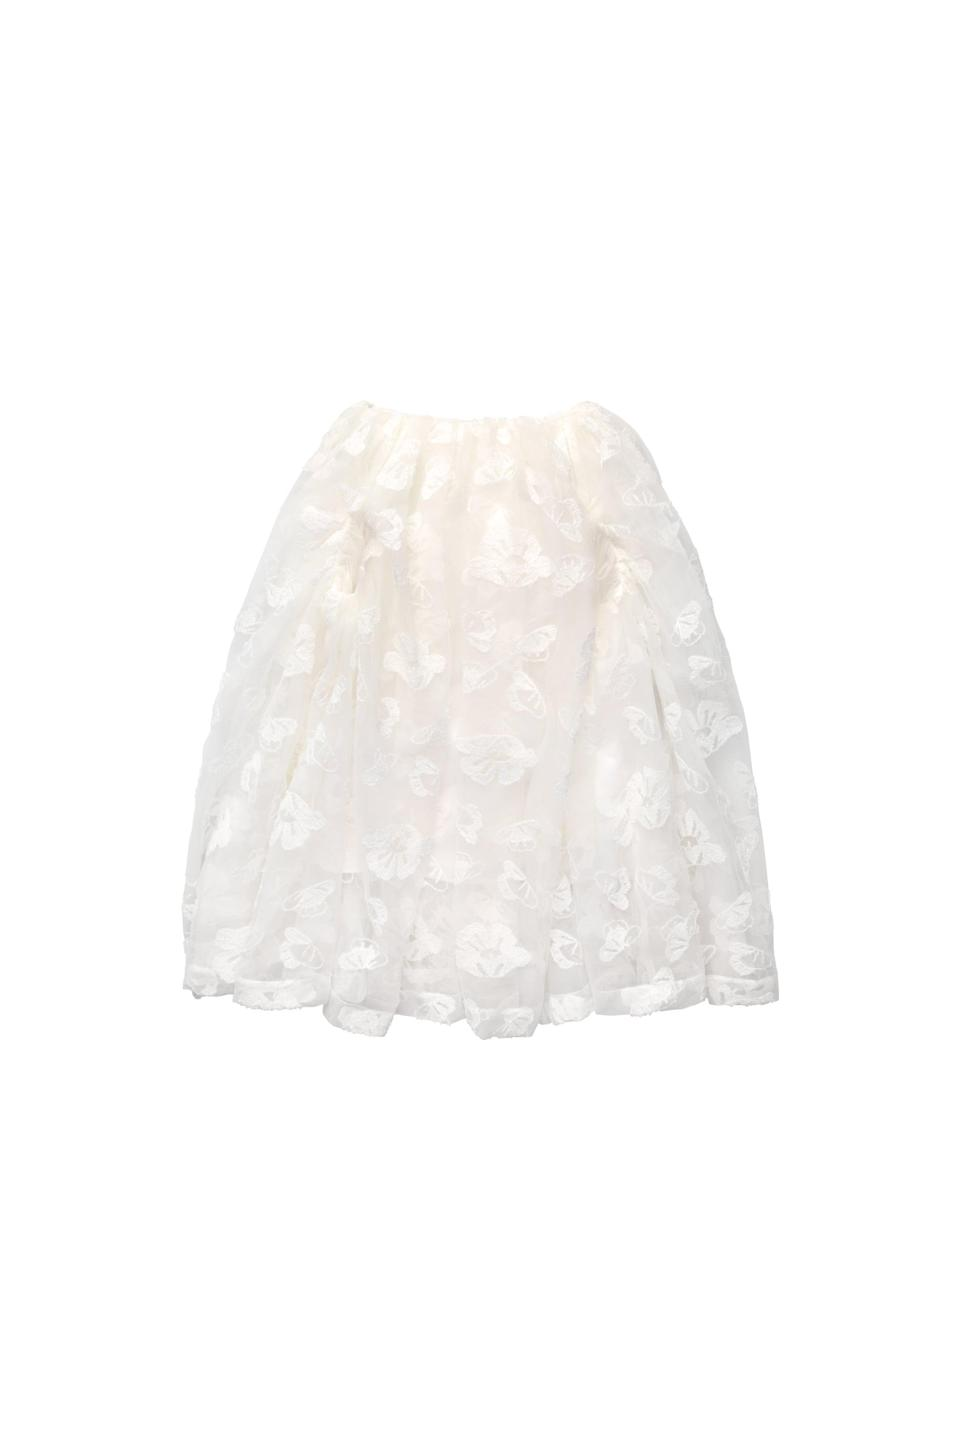 <p><span>Simone Rocha x H&amp;M Tinsel-Embroidered Puff Skirt</span> ($299).</p>